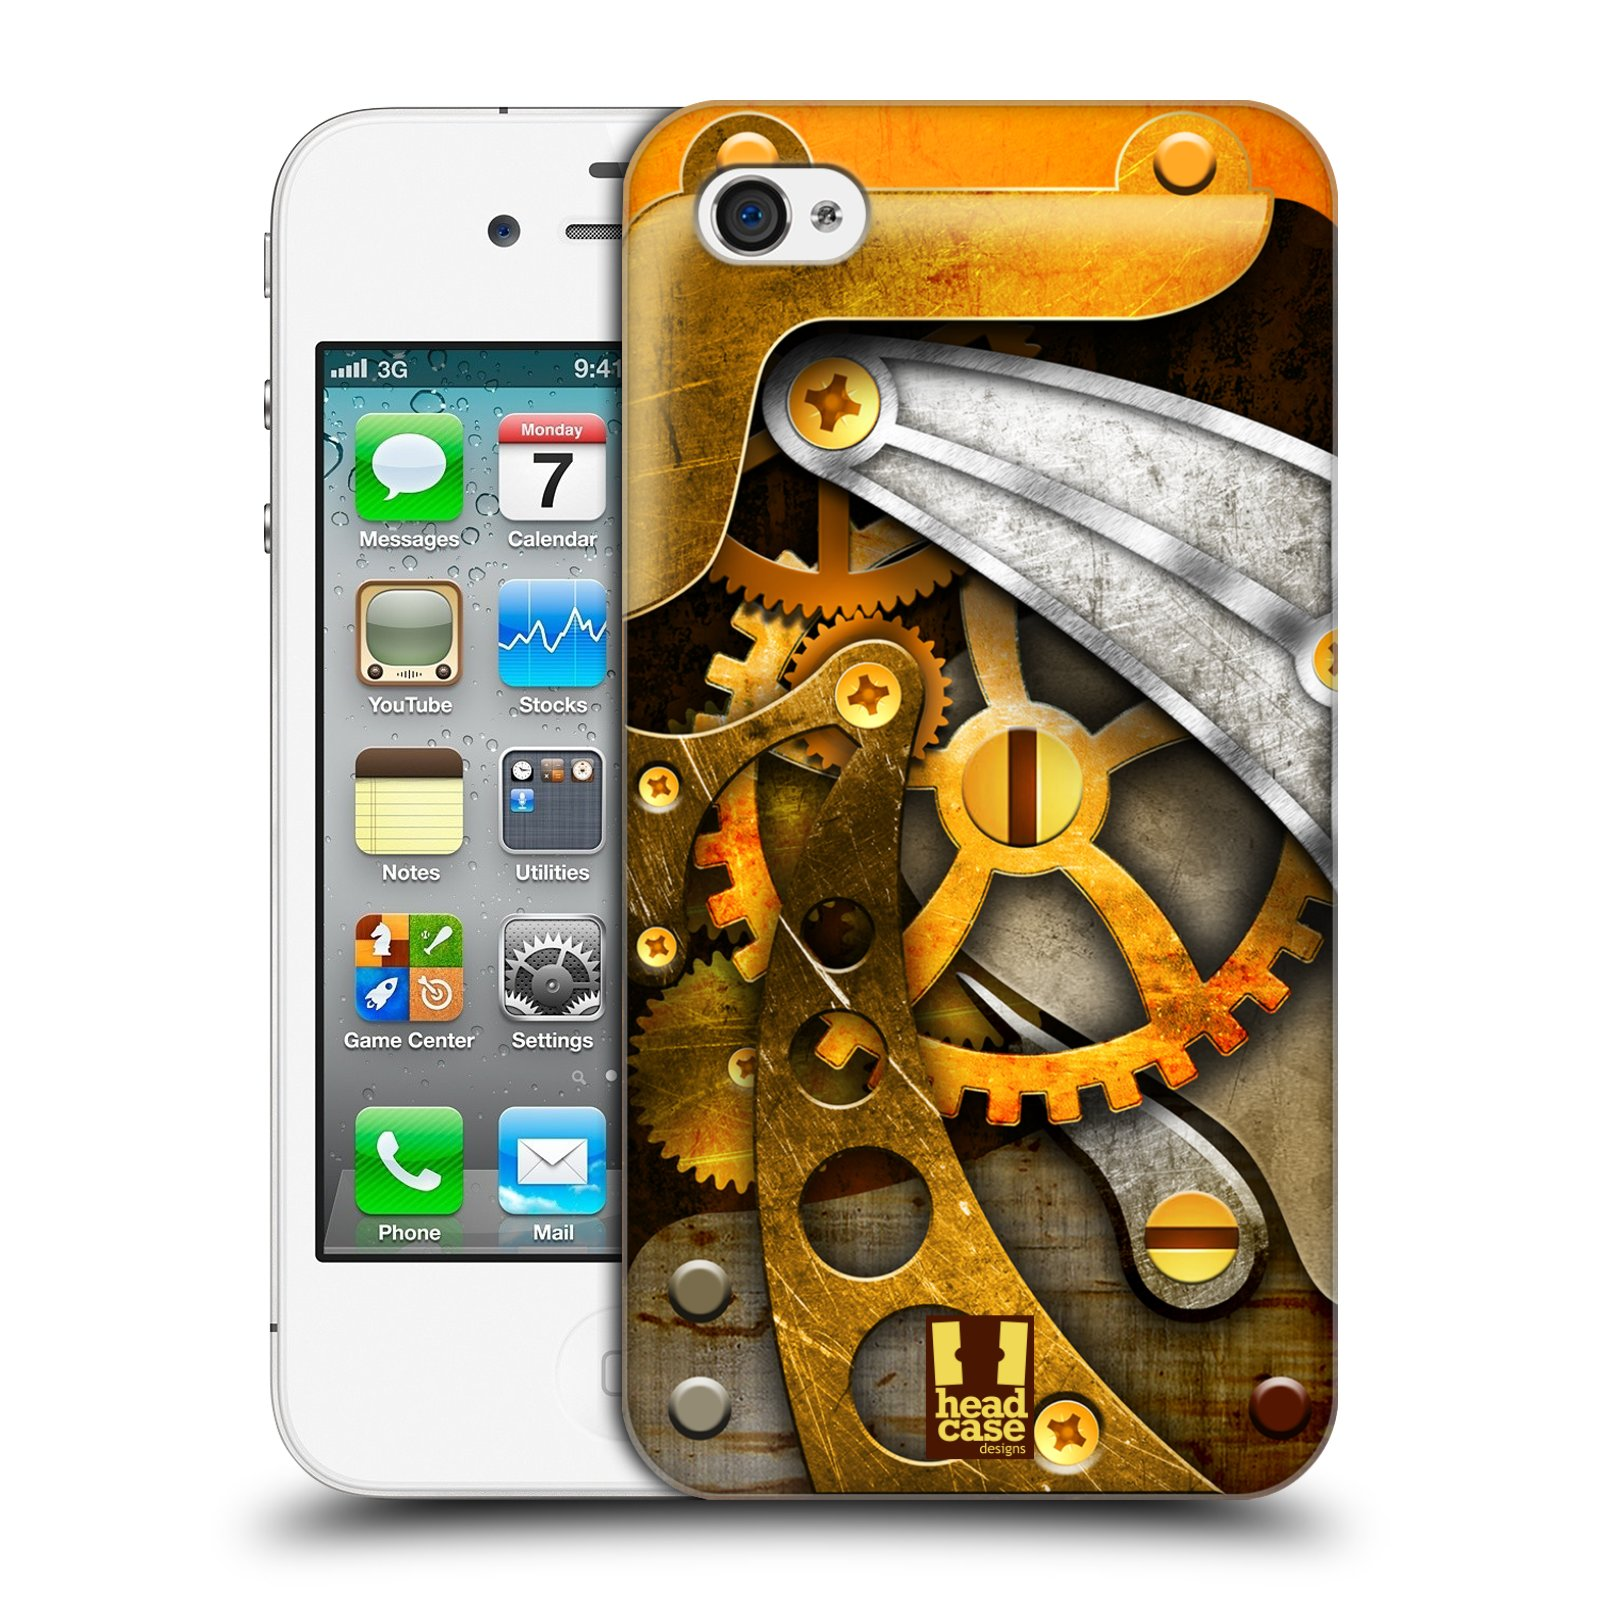 HEAD CASE DESIGNS STEAMPUNK HARD BACK CASE FOR APPLE iPHONE 4S